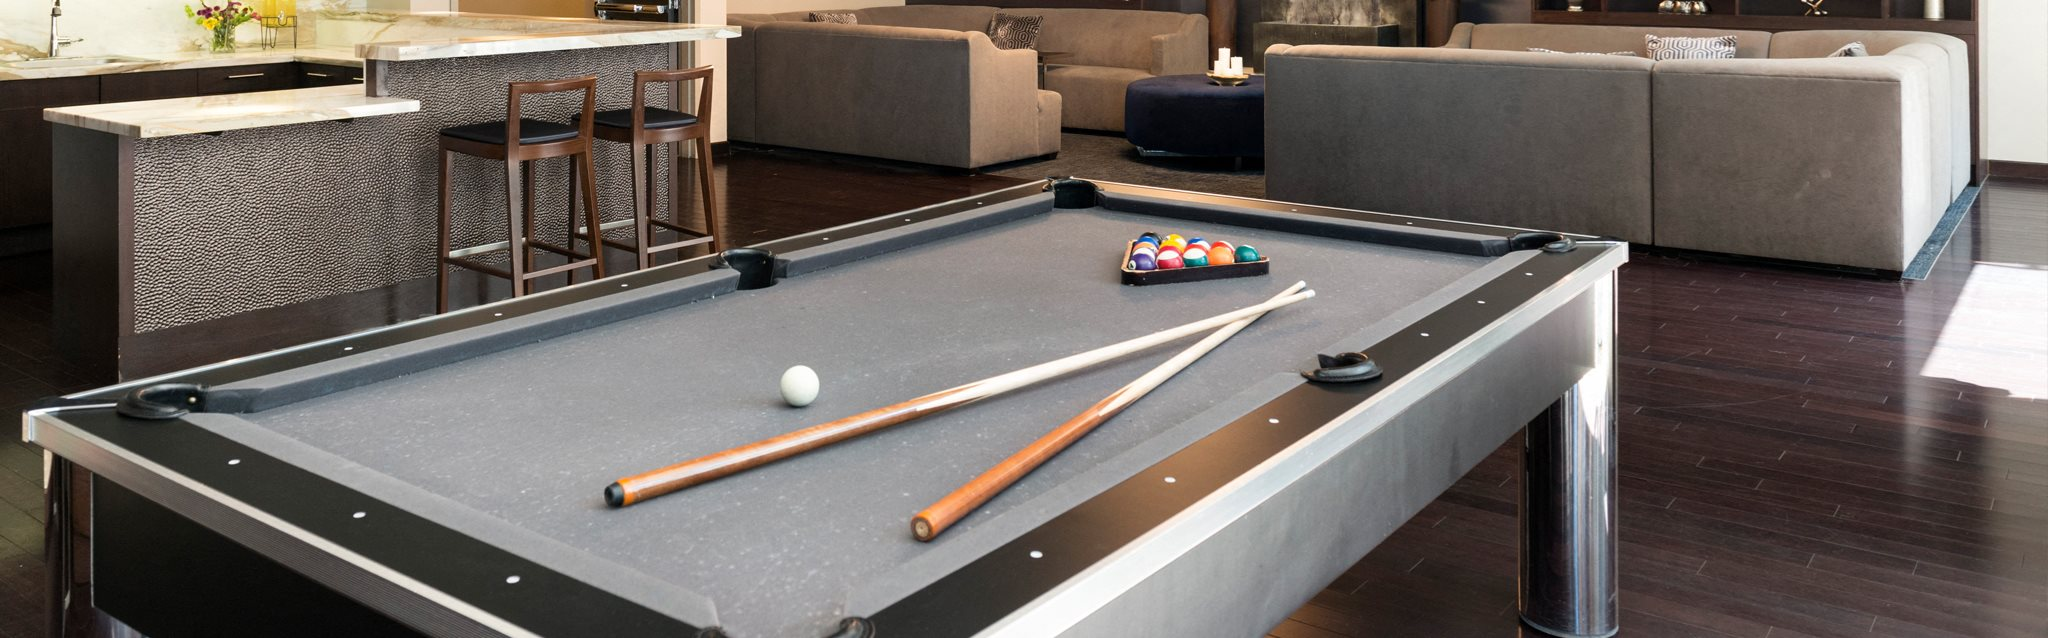 Clubhouse With Billiards At 1600 Vine Apartment Homes Hollywood California